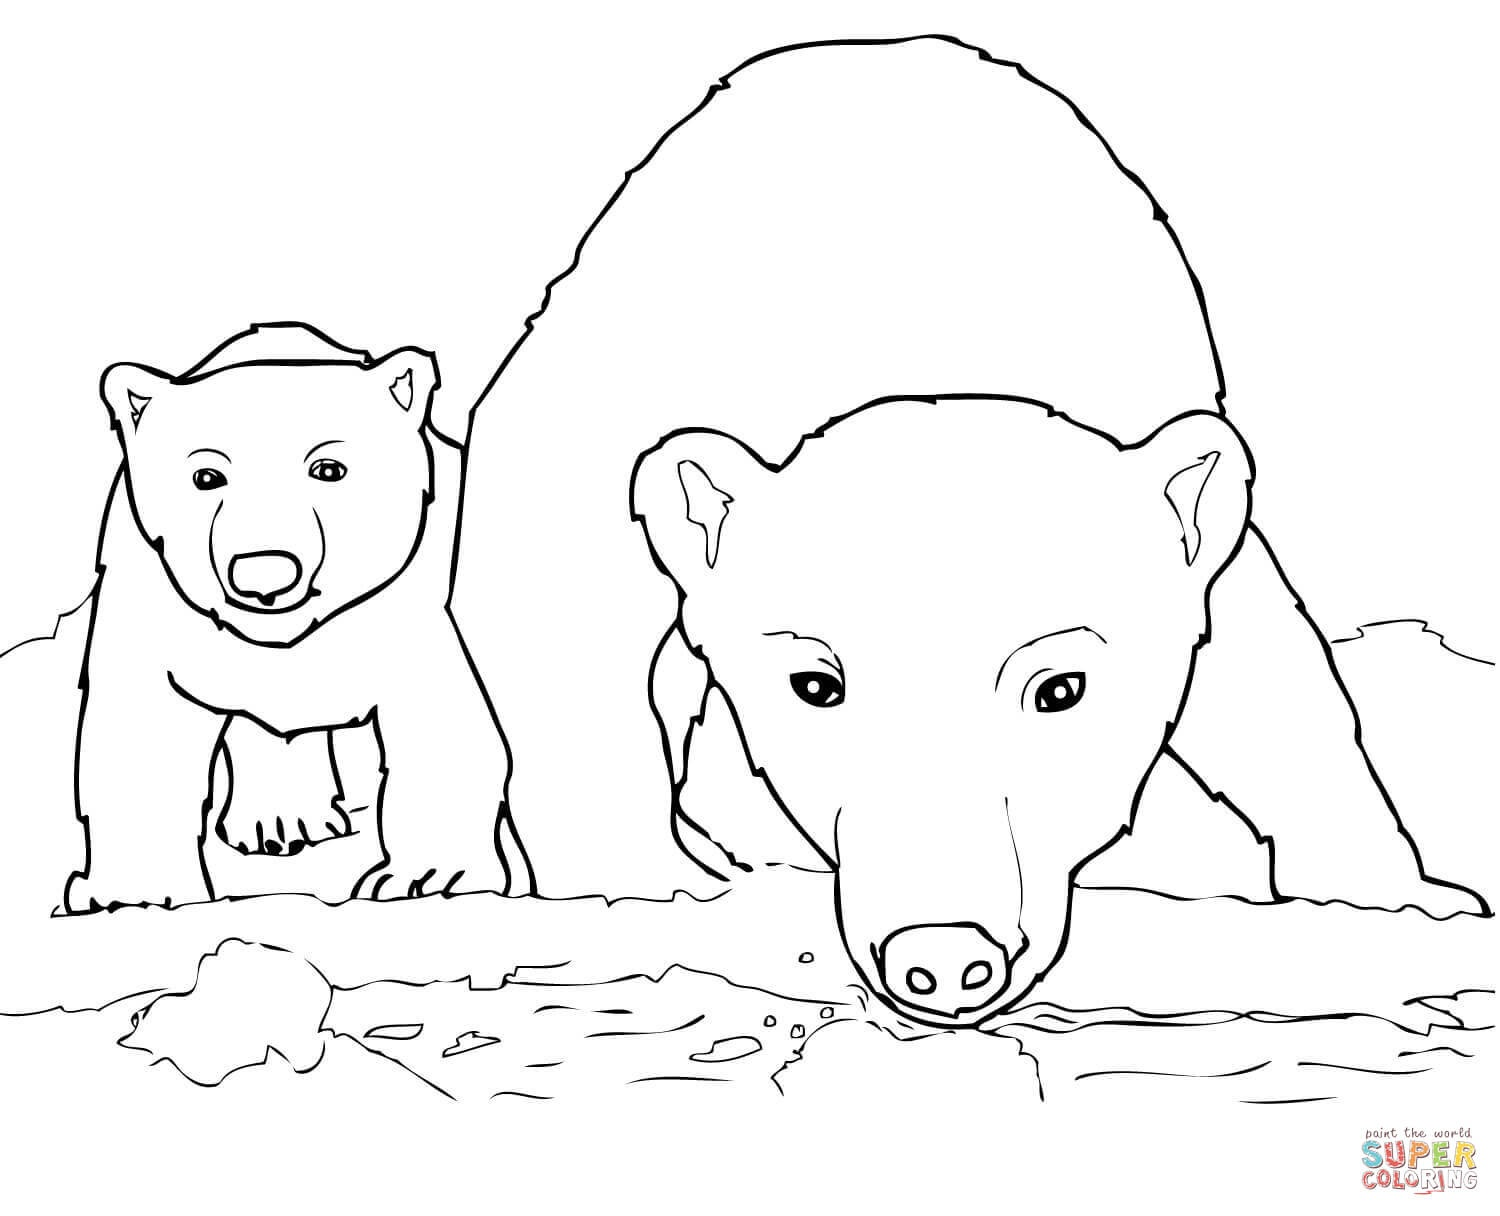 1500x1216 Lovely Curious Polar Bear Mother And Cub Coloring Page Free